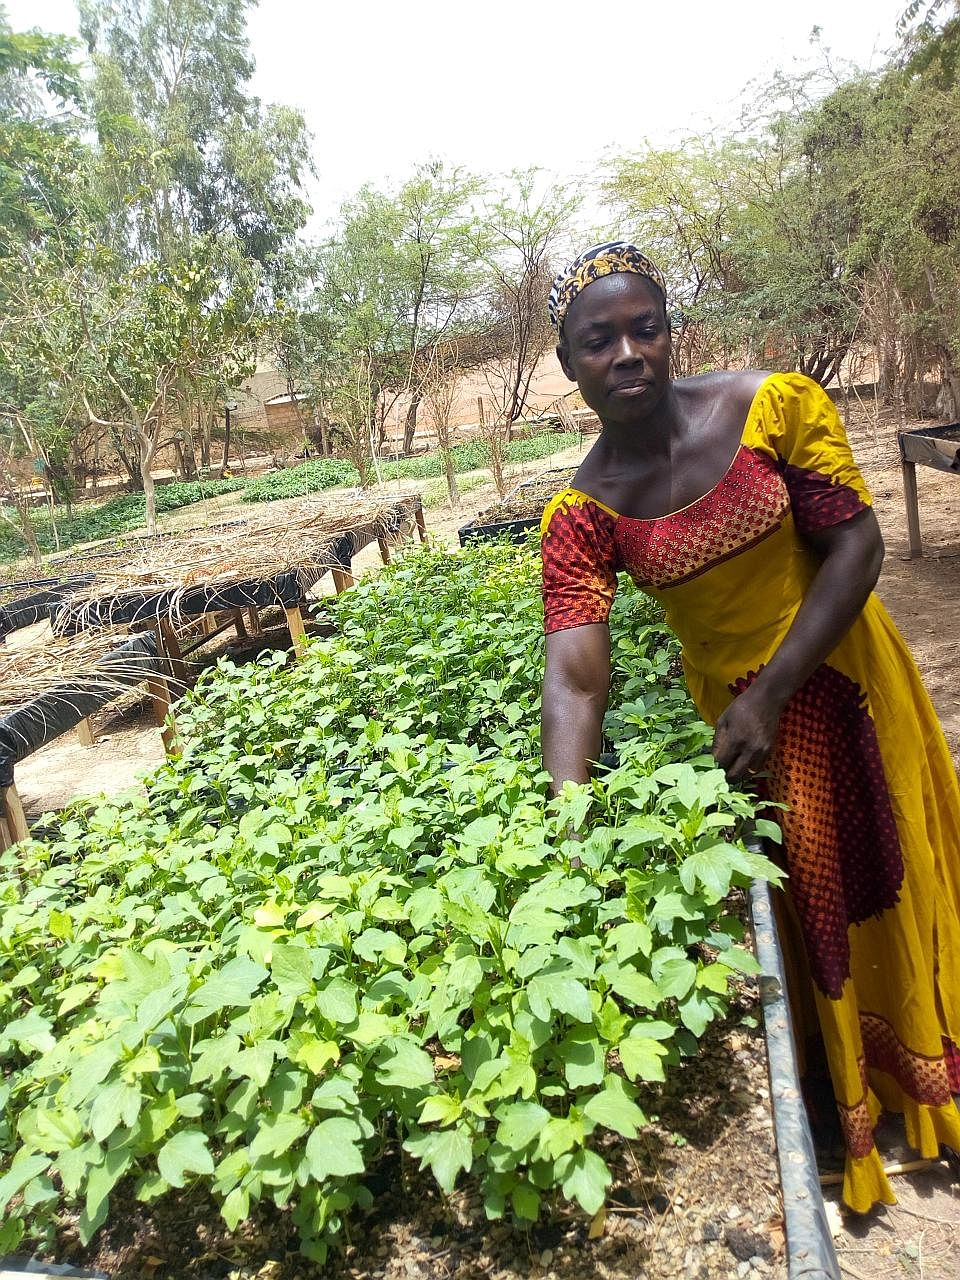 The farming initiative is benefiting women, helping them climb out of poverty, according to team leader Aminata Sinare.